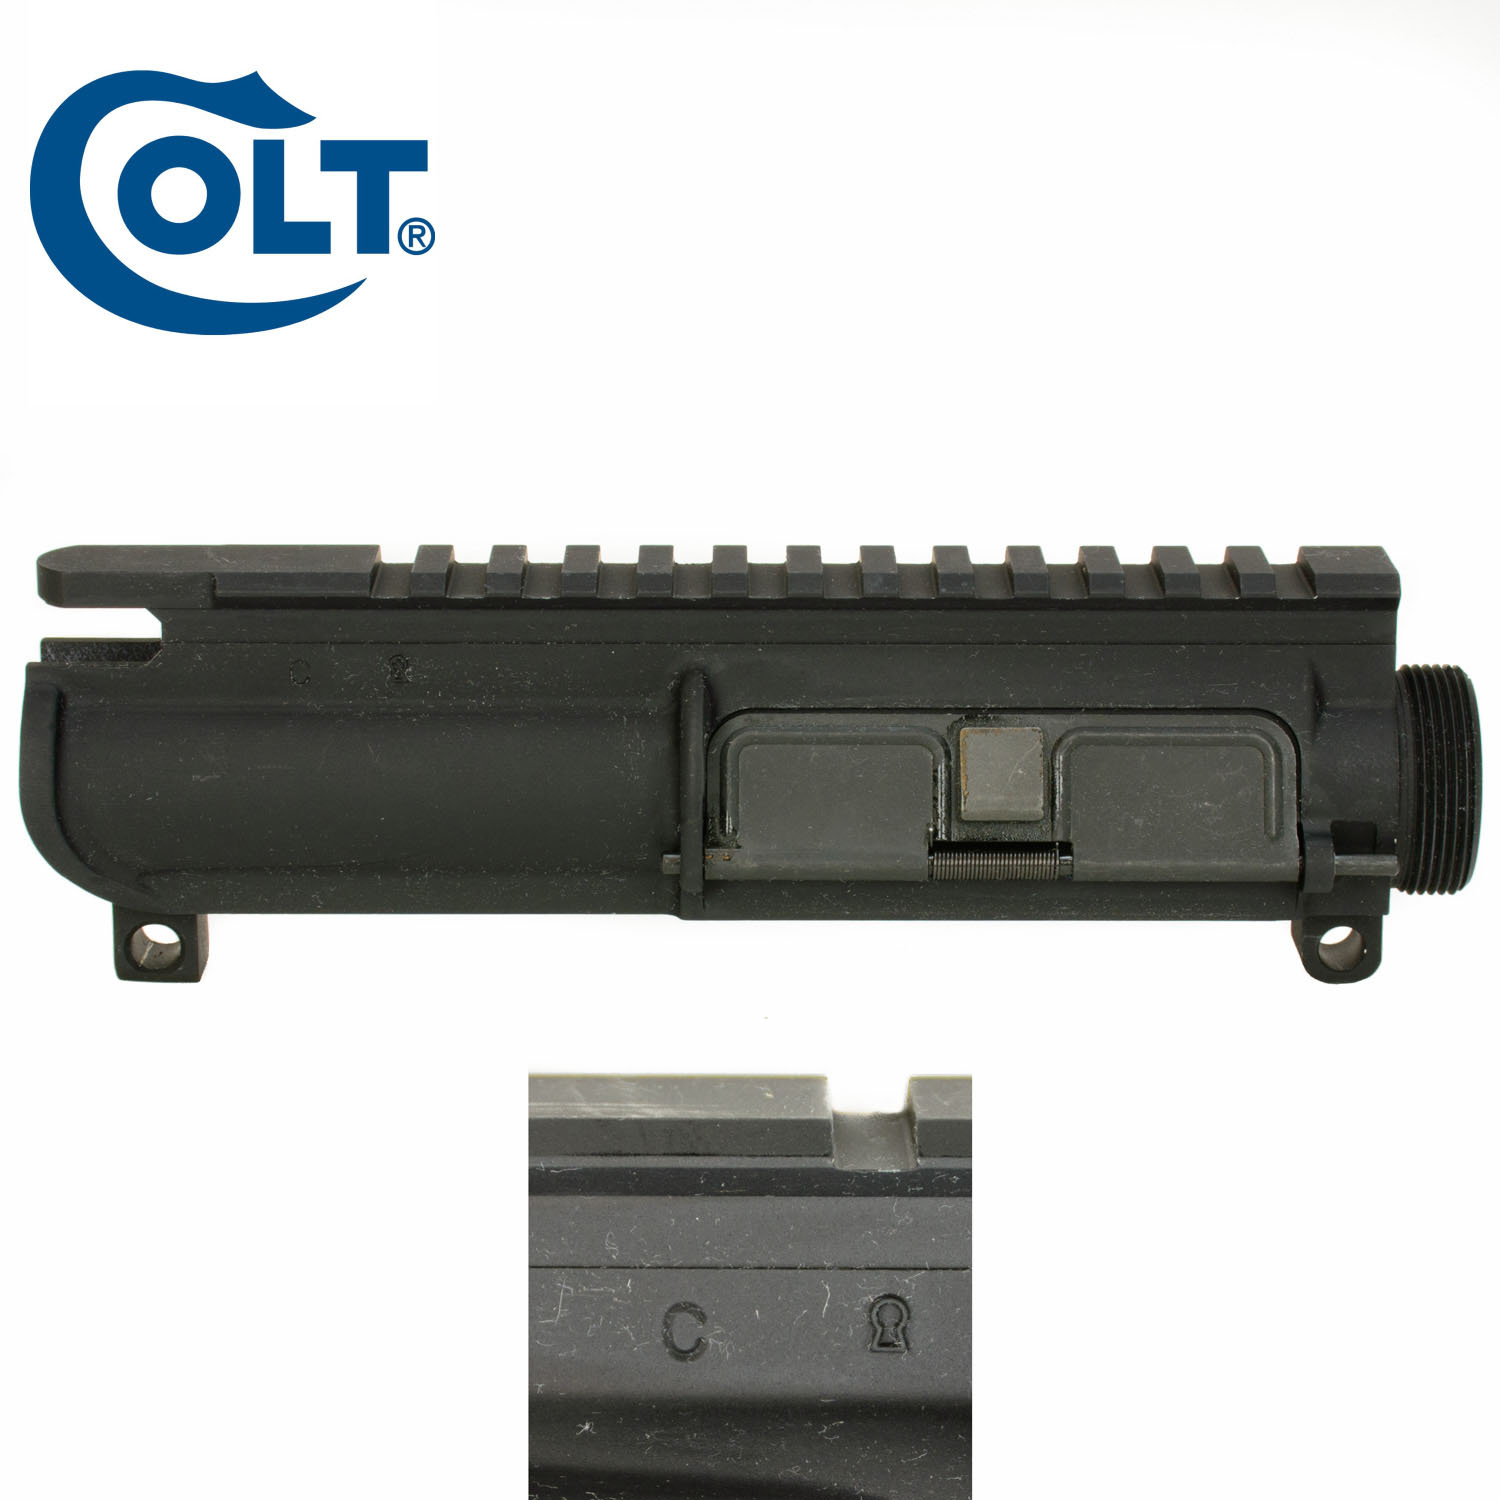 Colt SMG 9mm Upper Receiver Assembly: Midwest Gun Works